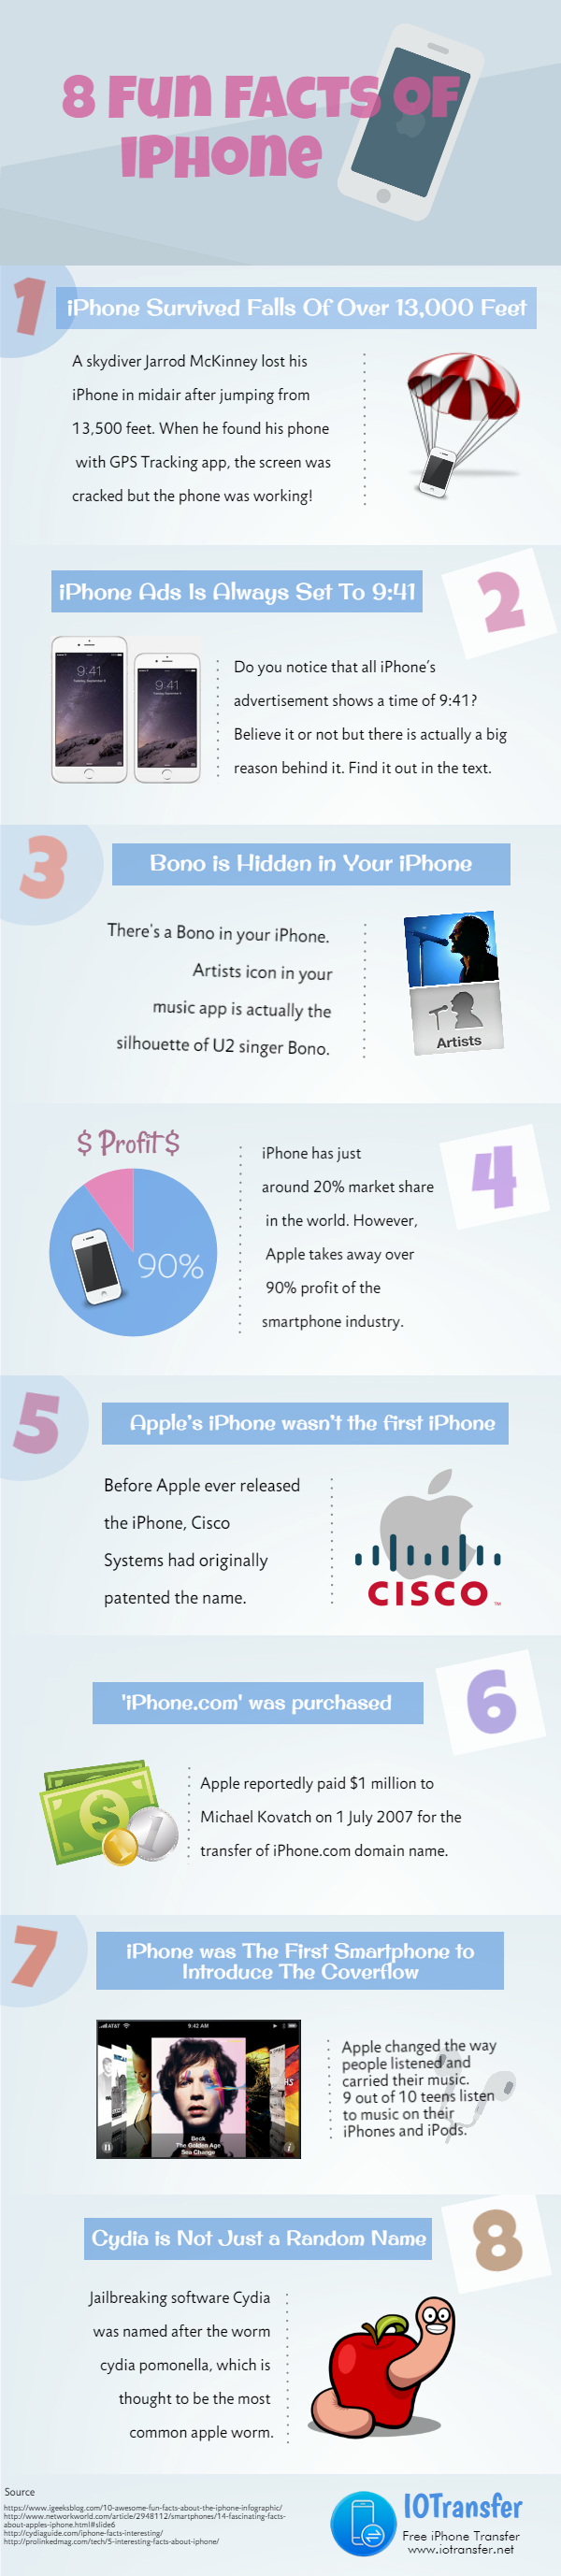 iPhone Facts and Statistics [Infographic]